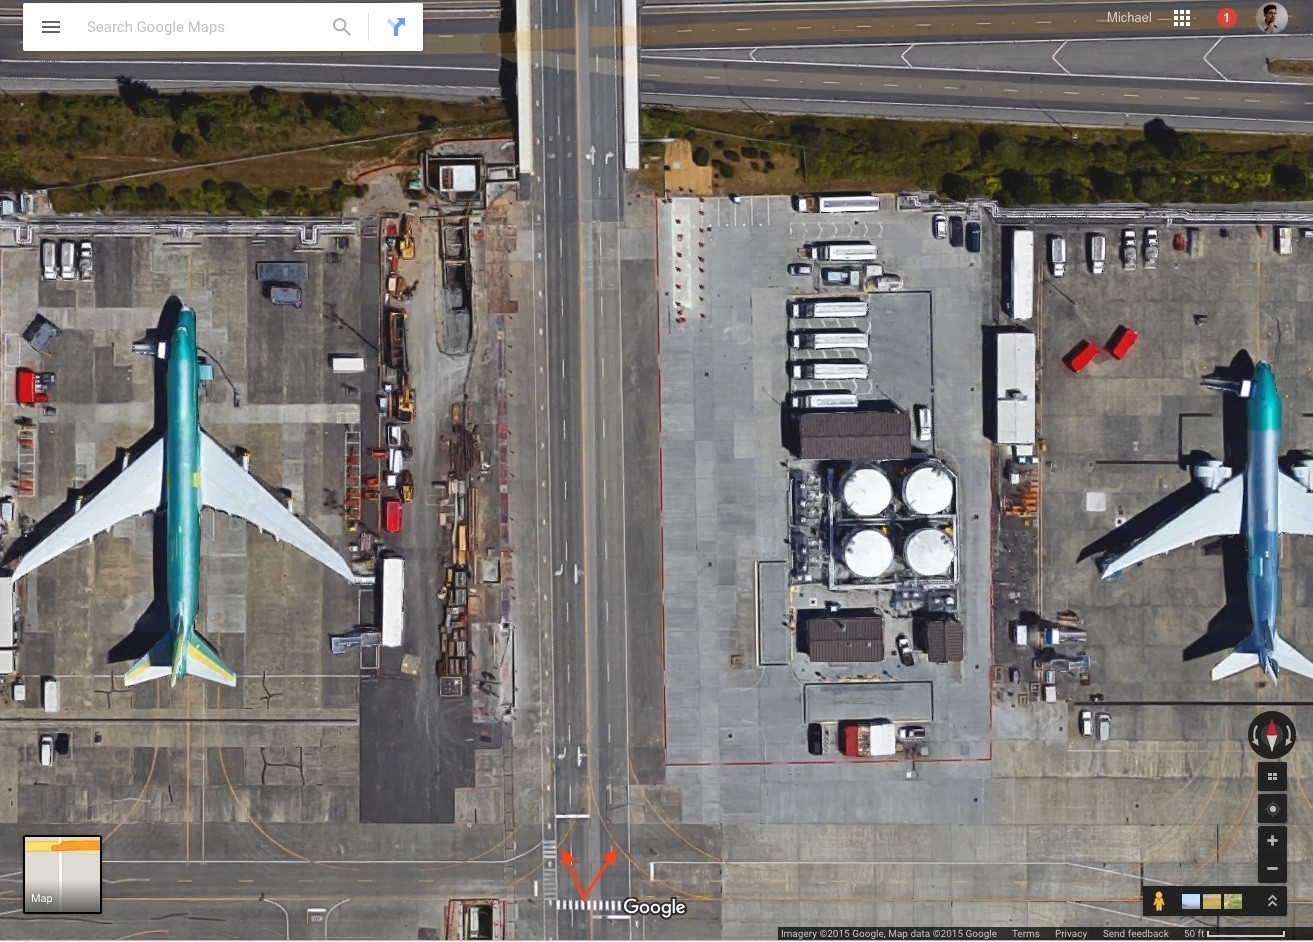 Where Is The Taxiway Between The Boeing Factory And Paine within Boeing Everett Factory Google Maps